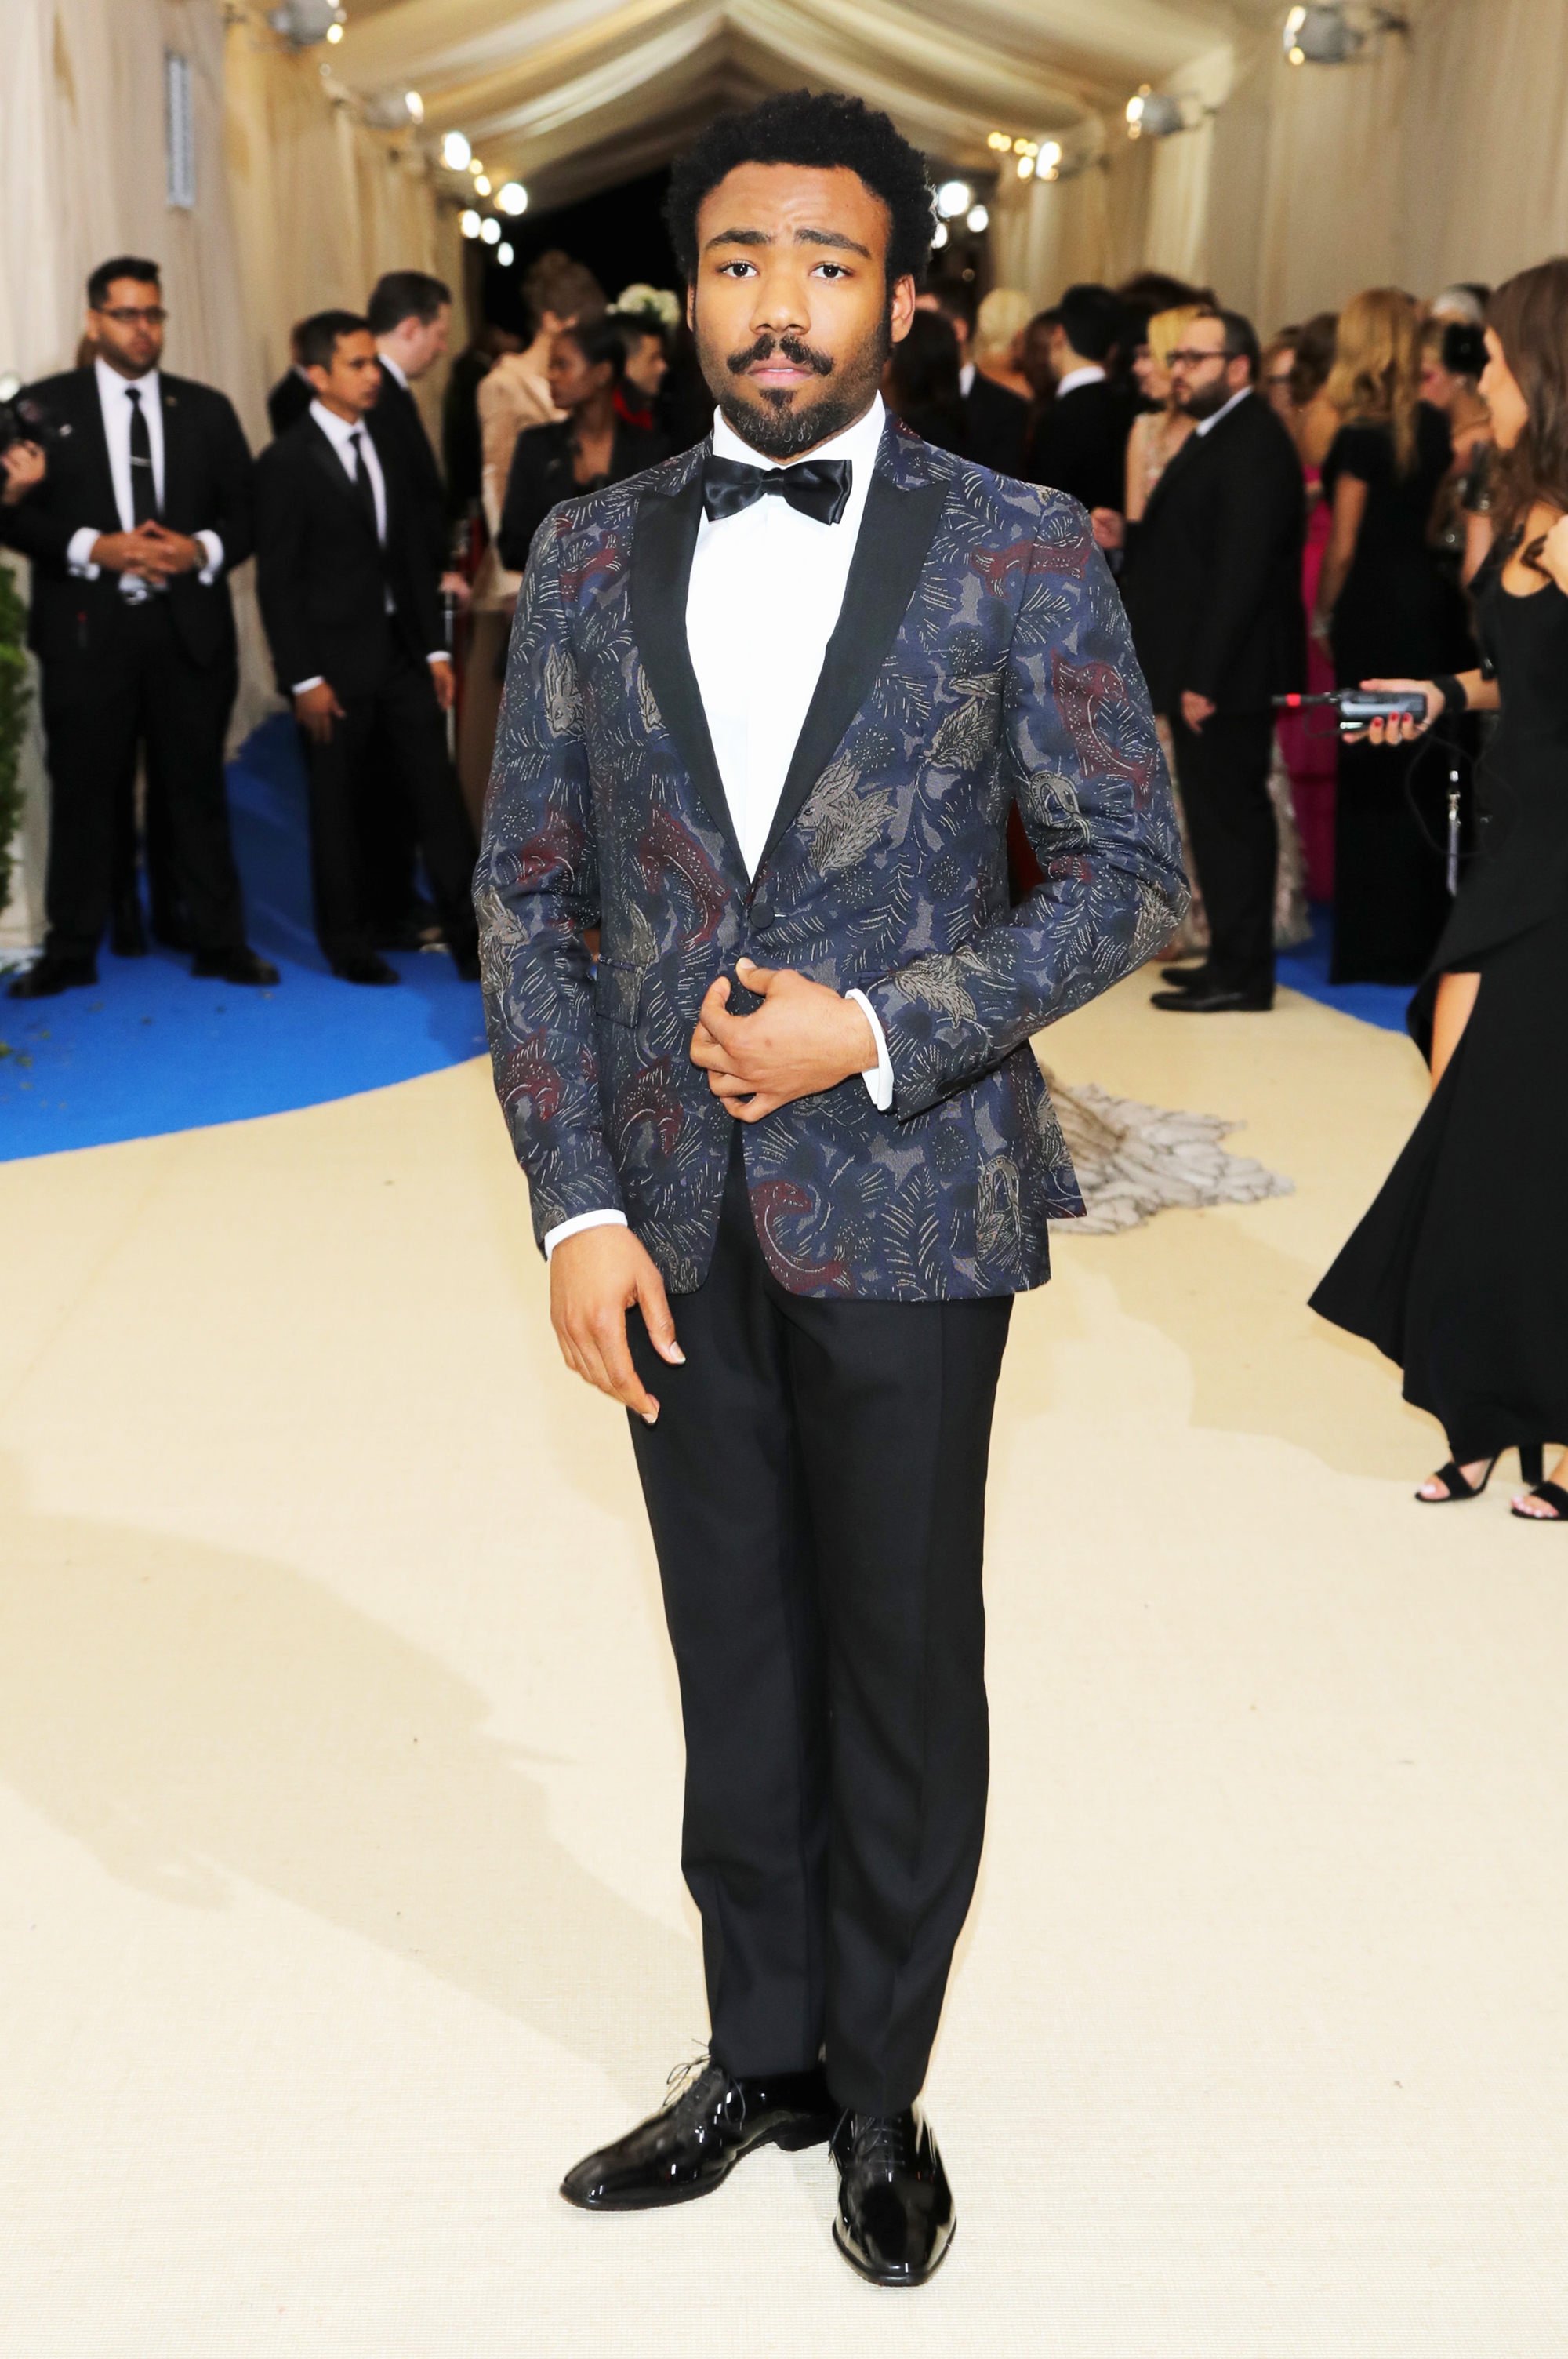 Donald Glover attends The Metropolitan Museum of Art's Costume Institute benefit gala celebrating the opening of the Rei Kawakubo/Comme des Garçons: Art of the In-Between exhibition in New York City, on May 1, 2017.